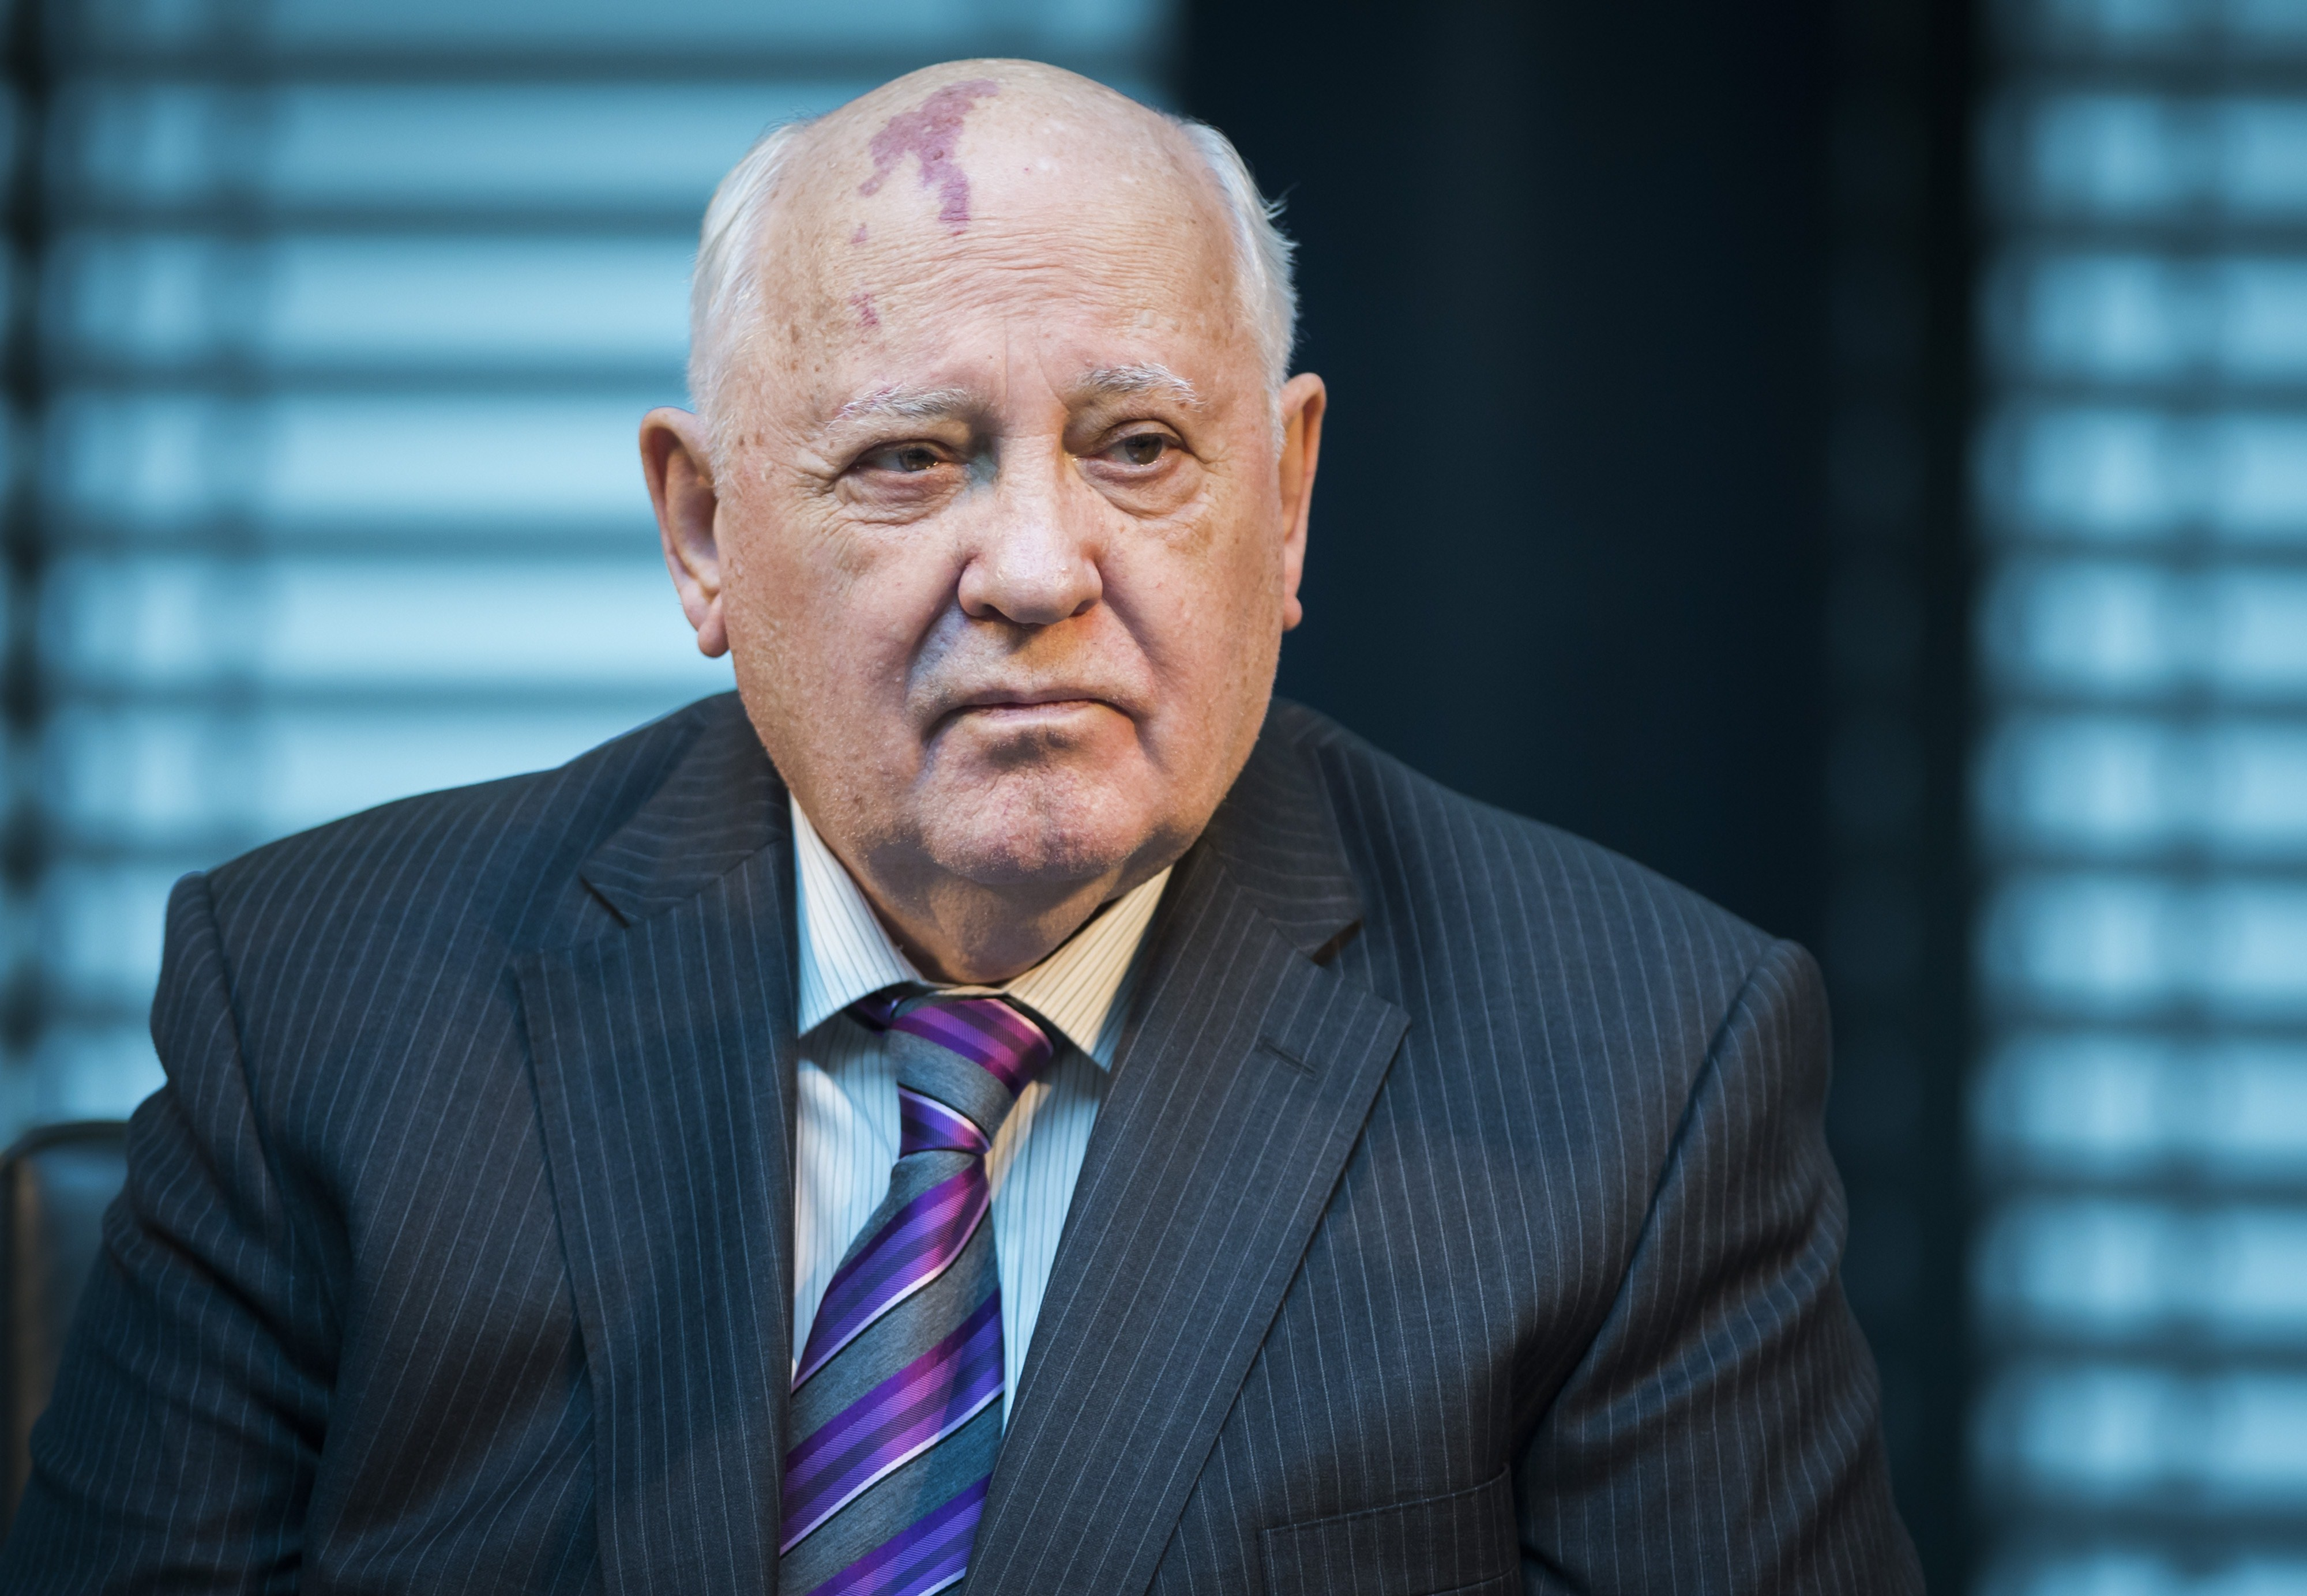 Former President of the Soviet Union Mikhail Gorbachev attends a symposium on security in Europe 25 years after the fall of the  Wall  in Berlin on Nov. 8, 2014.